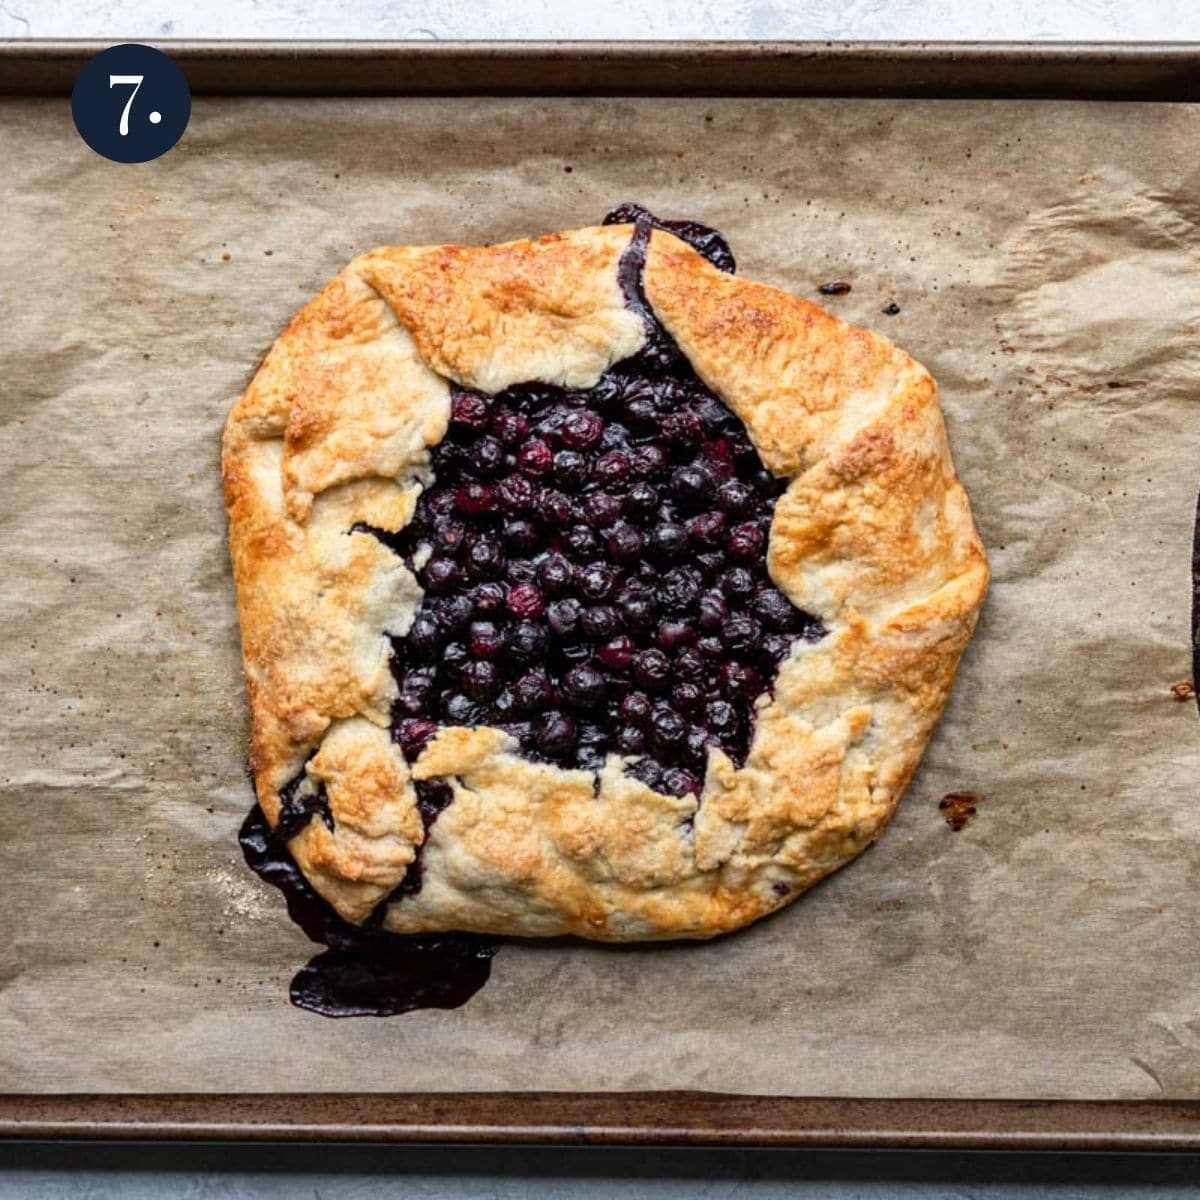 a blueberry galette on a baking sheet with parchment paper